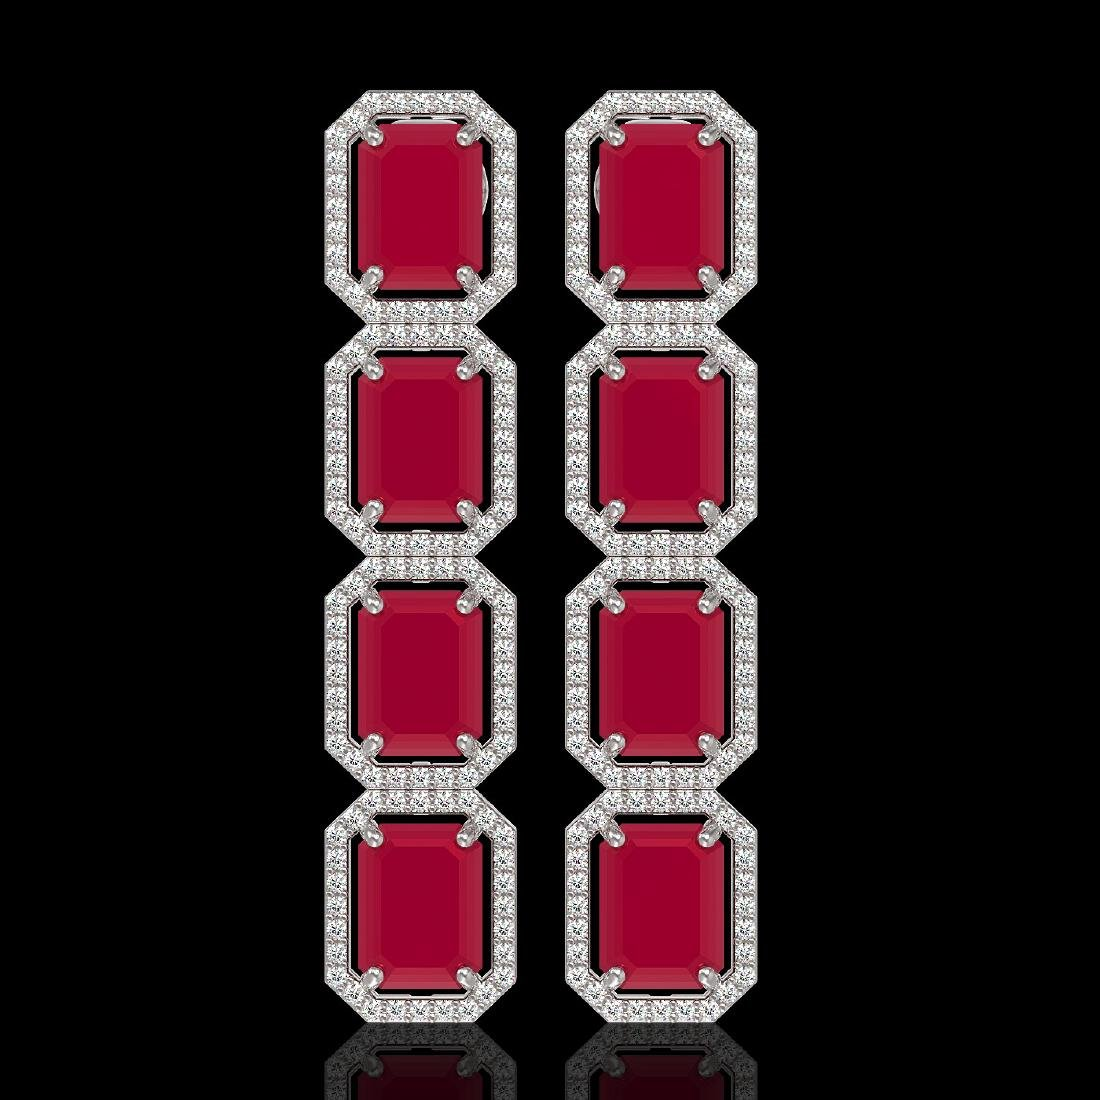 20.59 CTW Ruby & Diamond Halo Earrings 10K White Gold